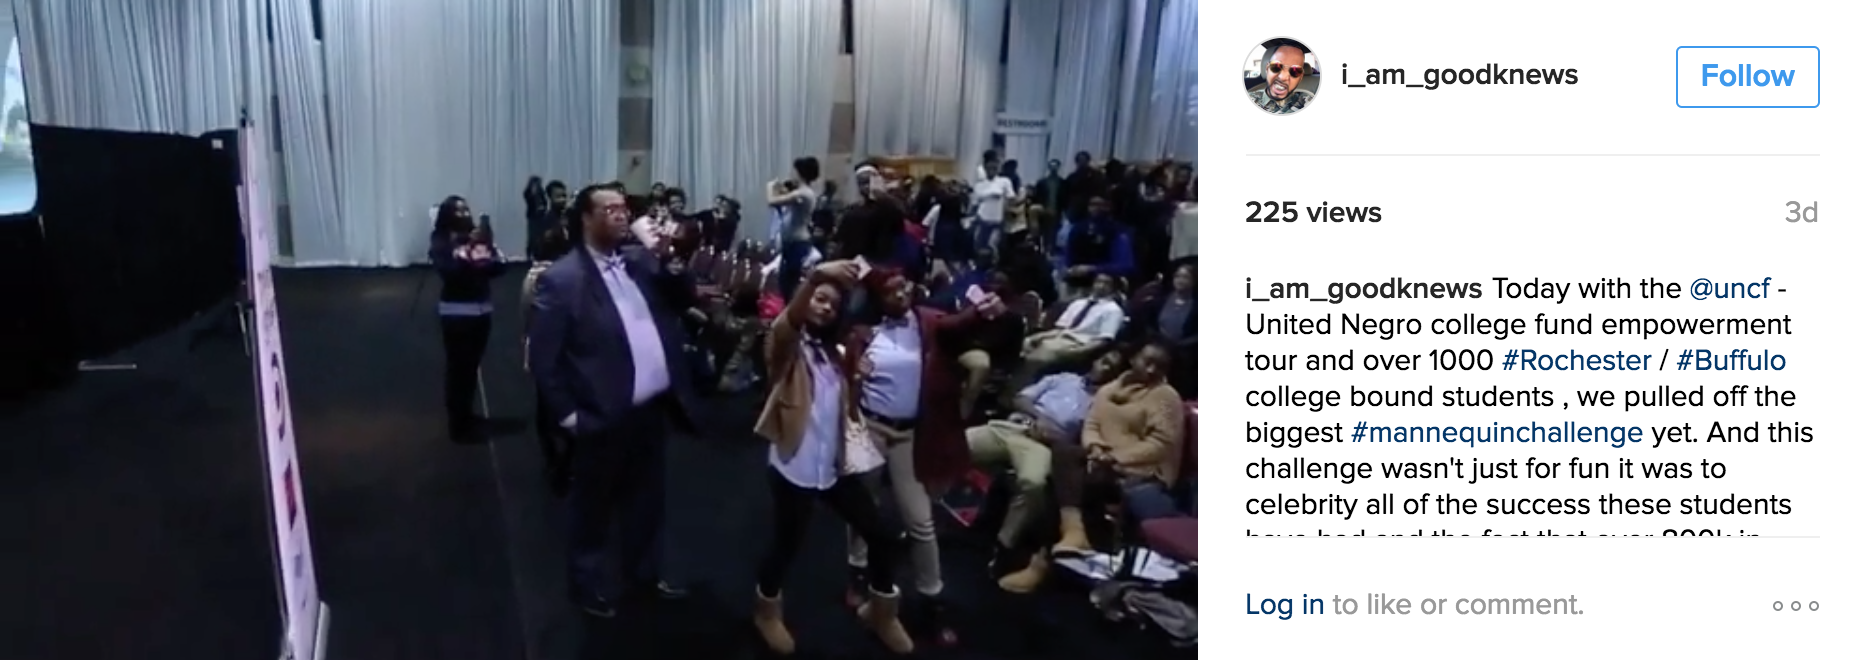 UNCF Mannequin  Challenge Empower Me Tour HBCU Rochester NY Filmed By GoodKnews